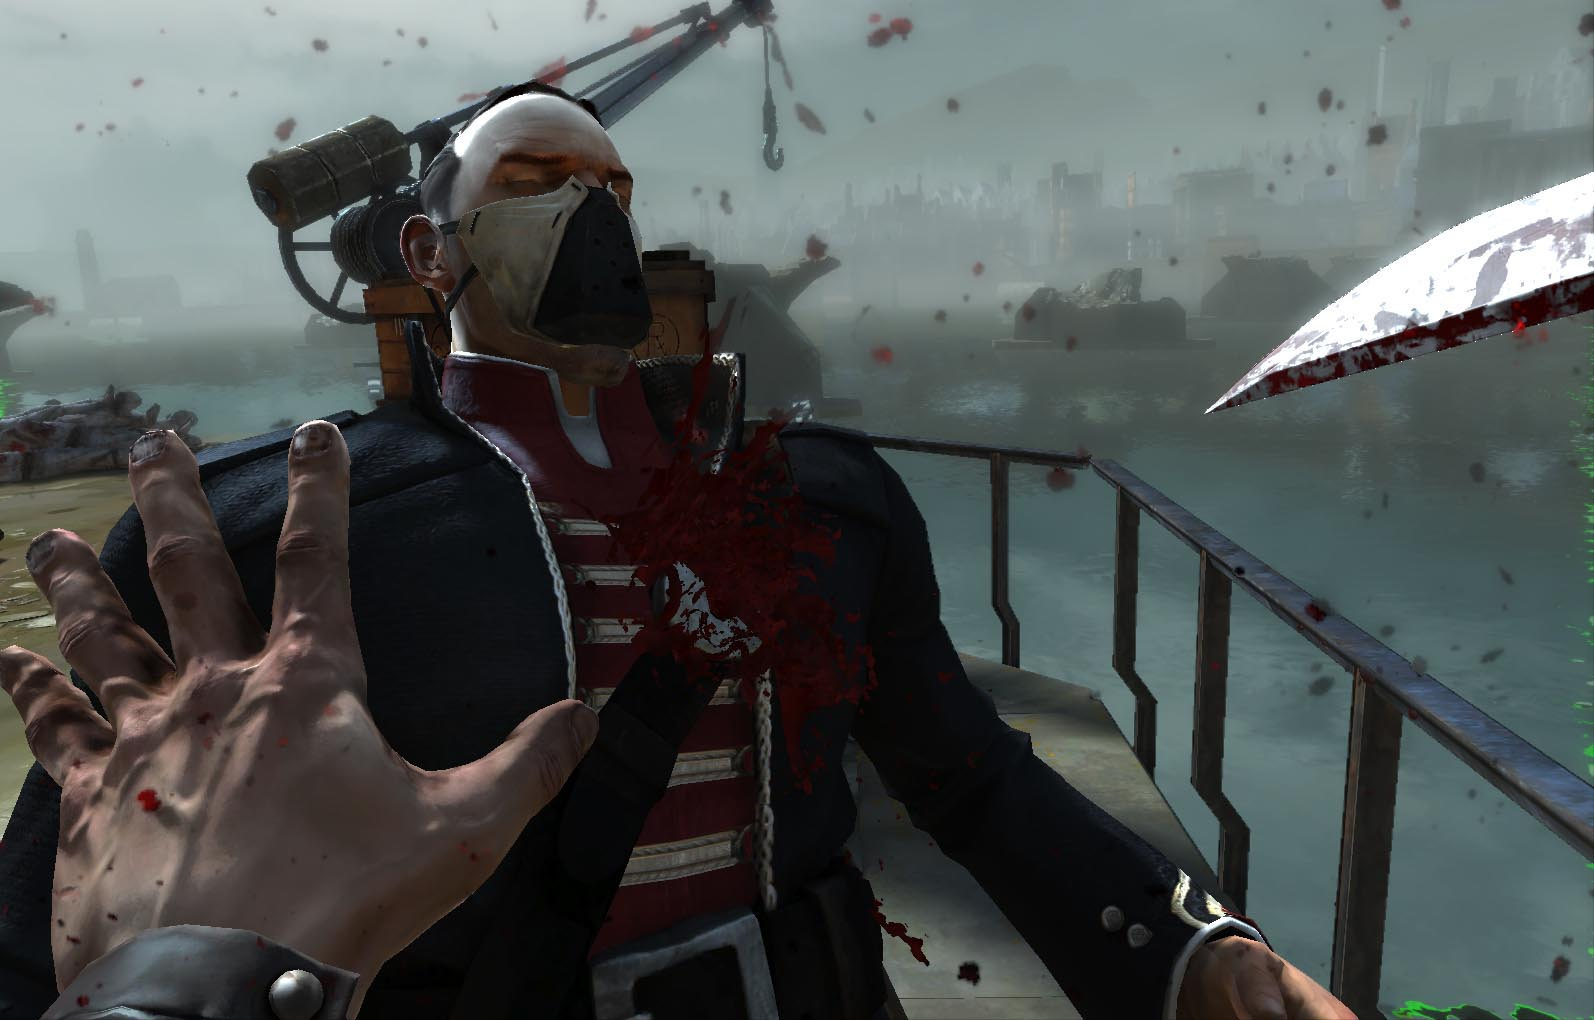 El primer trailer gameplay de Dishonored es absolutamente BRUTAL! [Video] #E3